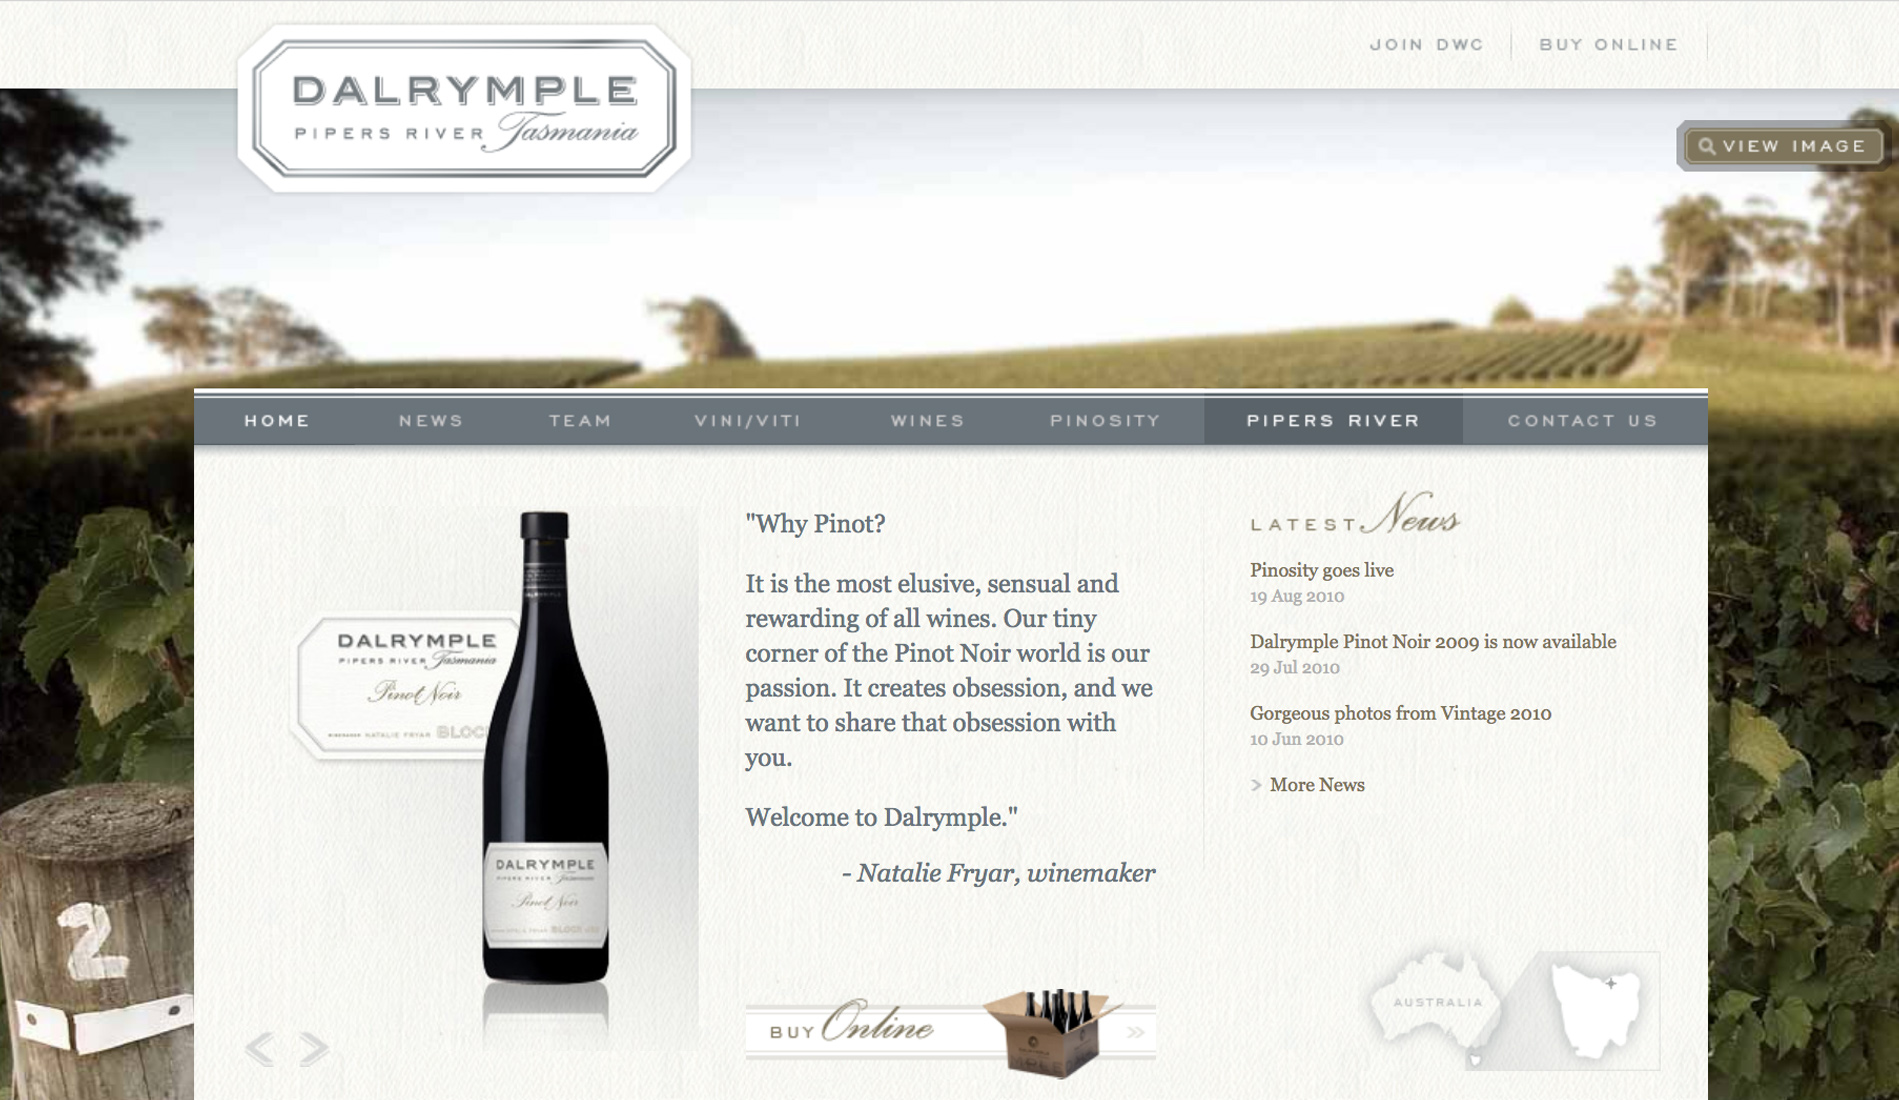 Dalrymple deliver beautiful wine through an elegant website